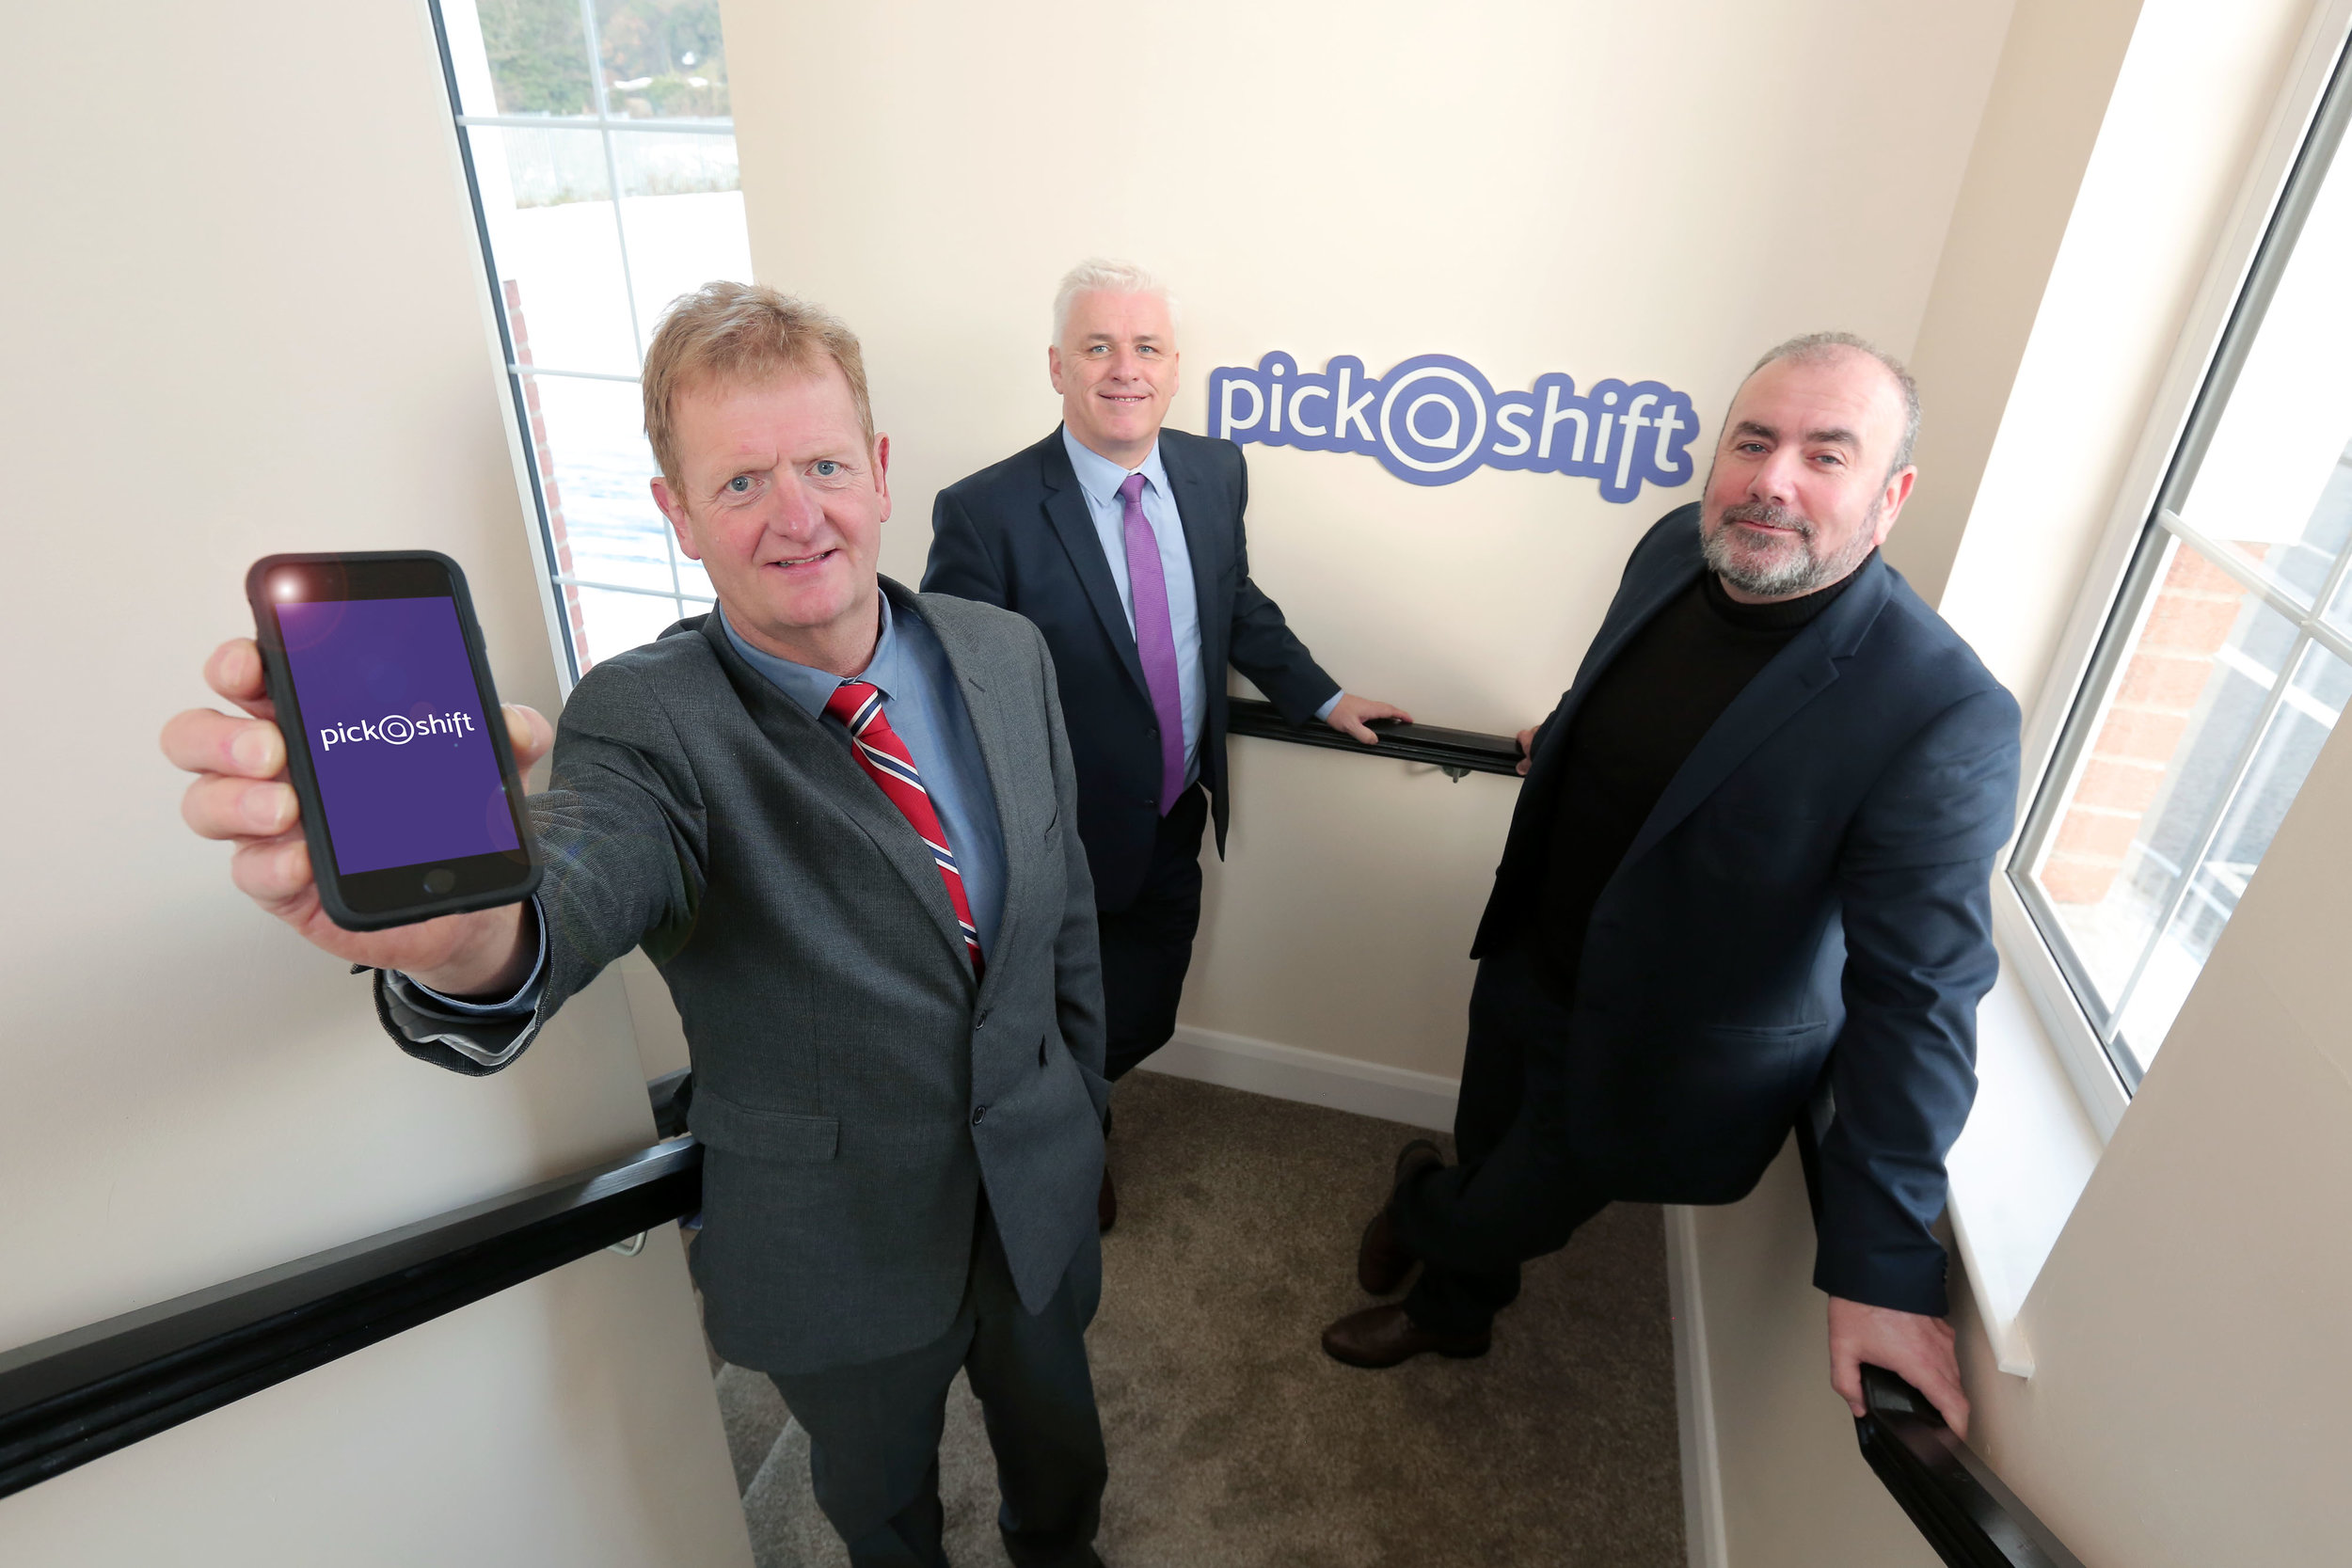 New NI developed 'PickaShift' App set to revolutionise care home staffing. Launching the new app are PickaShift founders, Peter Graham, Fearghal McKinney and Liam Lavery.